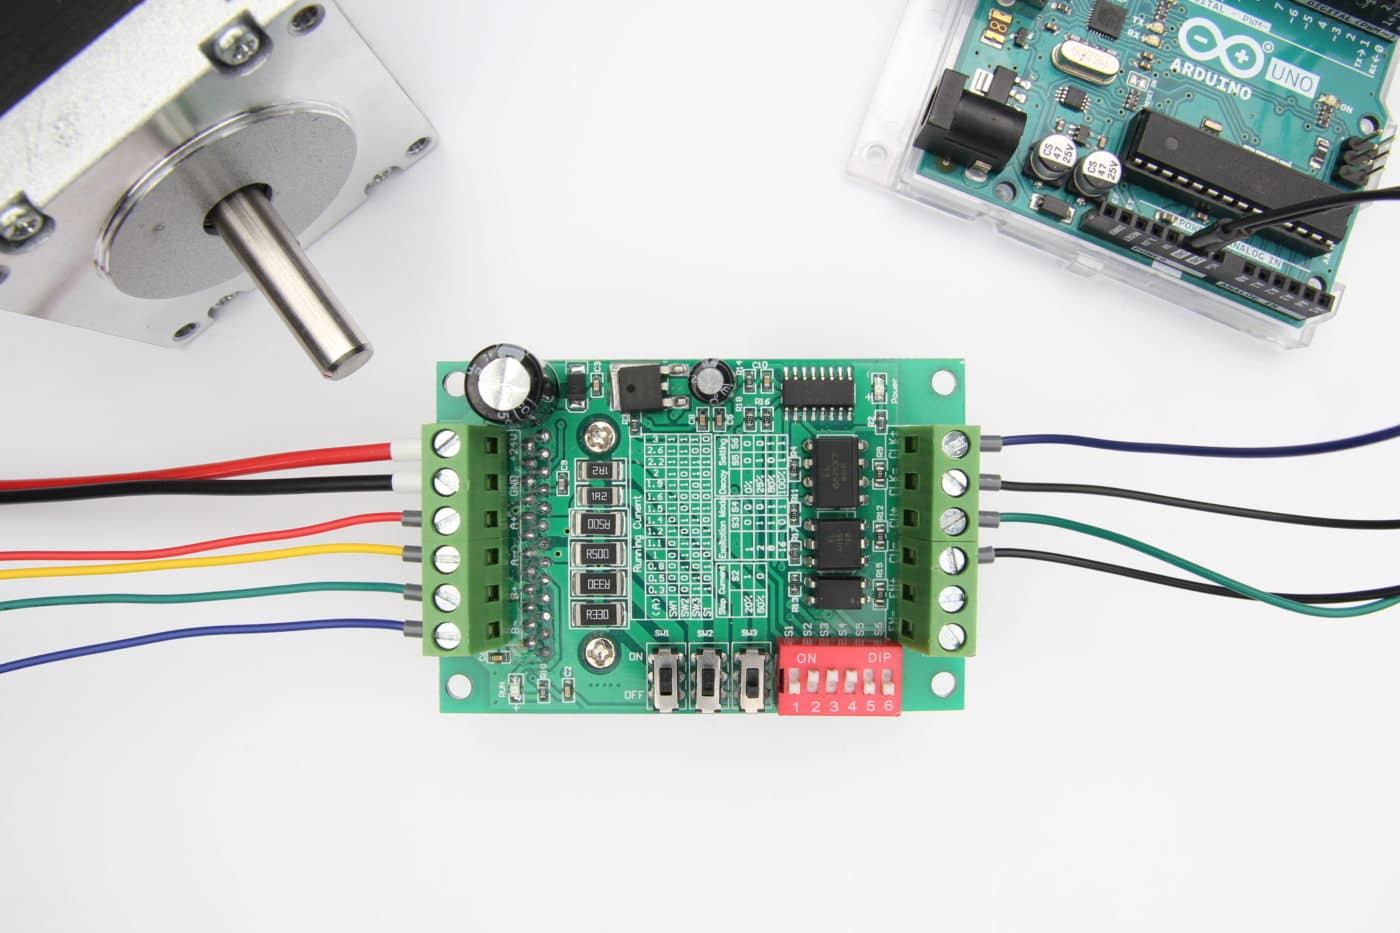 TB6560 Stepper Motor Driver with Arduino Tutorial (2 Examples) on